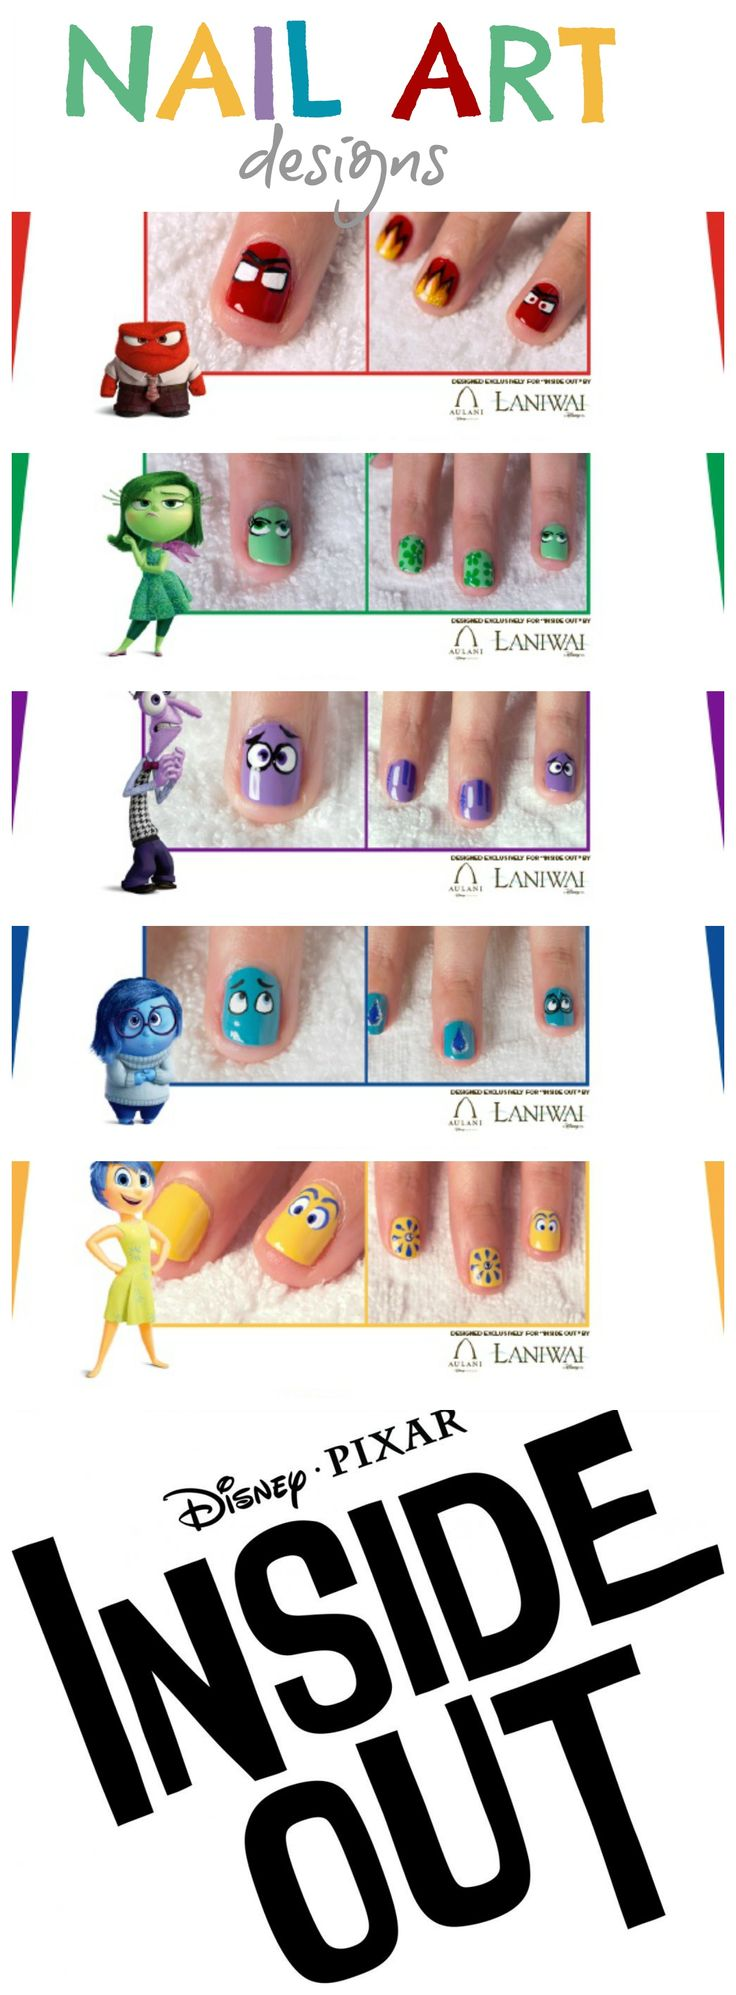 25+ best ideas about Girls nail designs on Pinterest | Girls nails ...